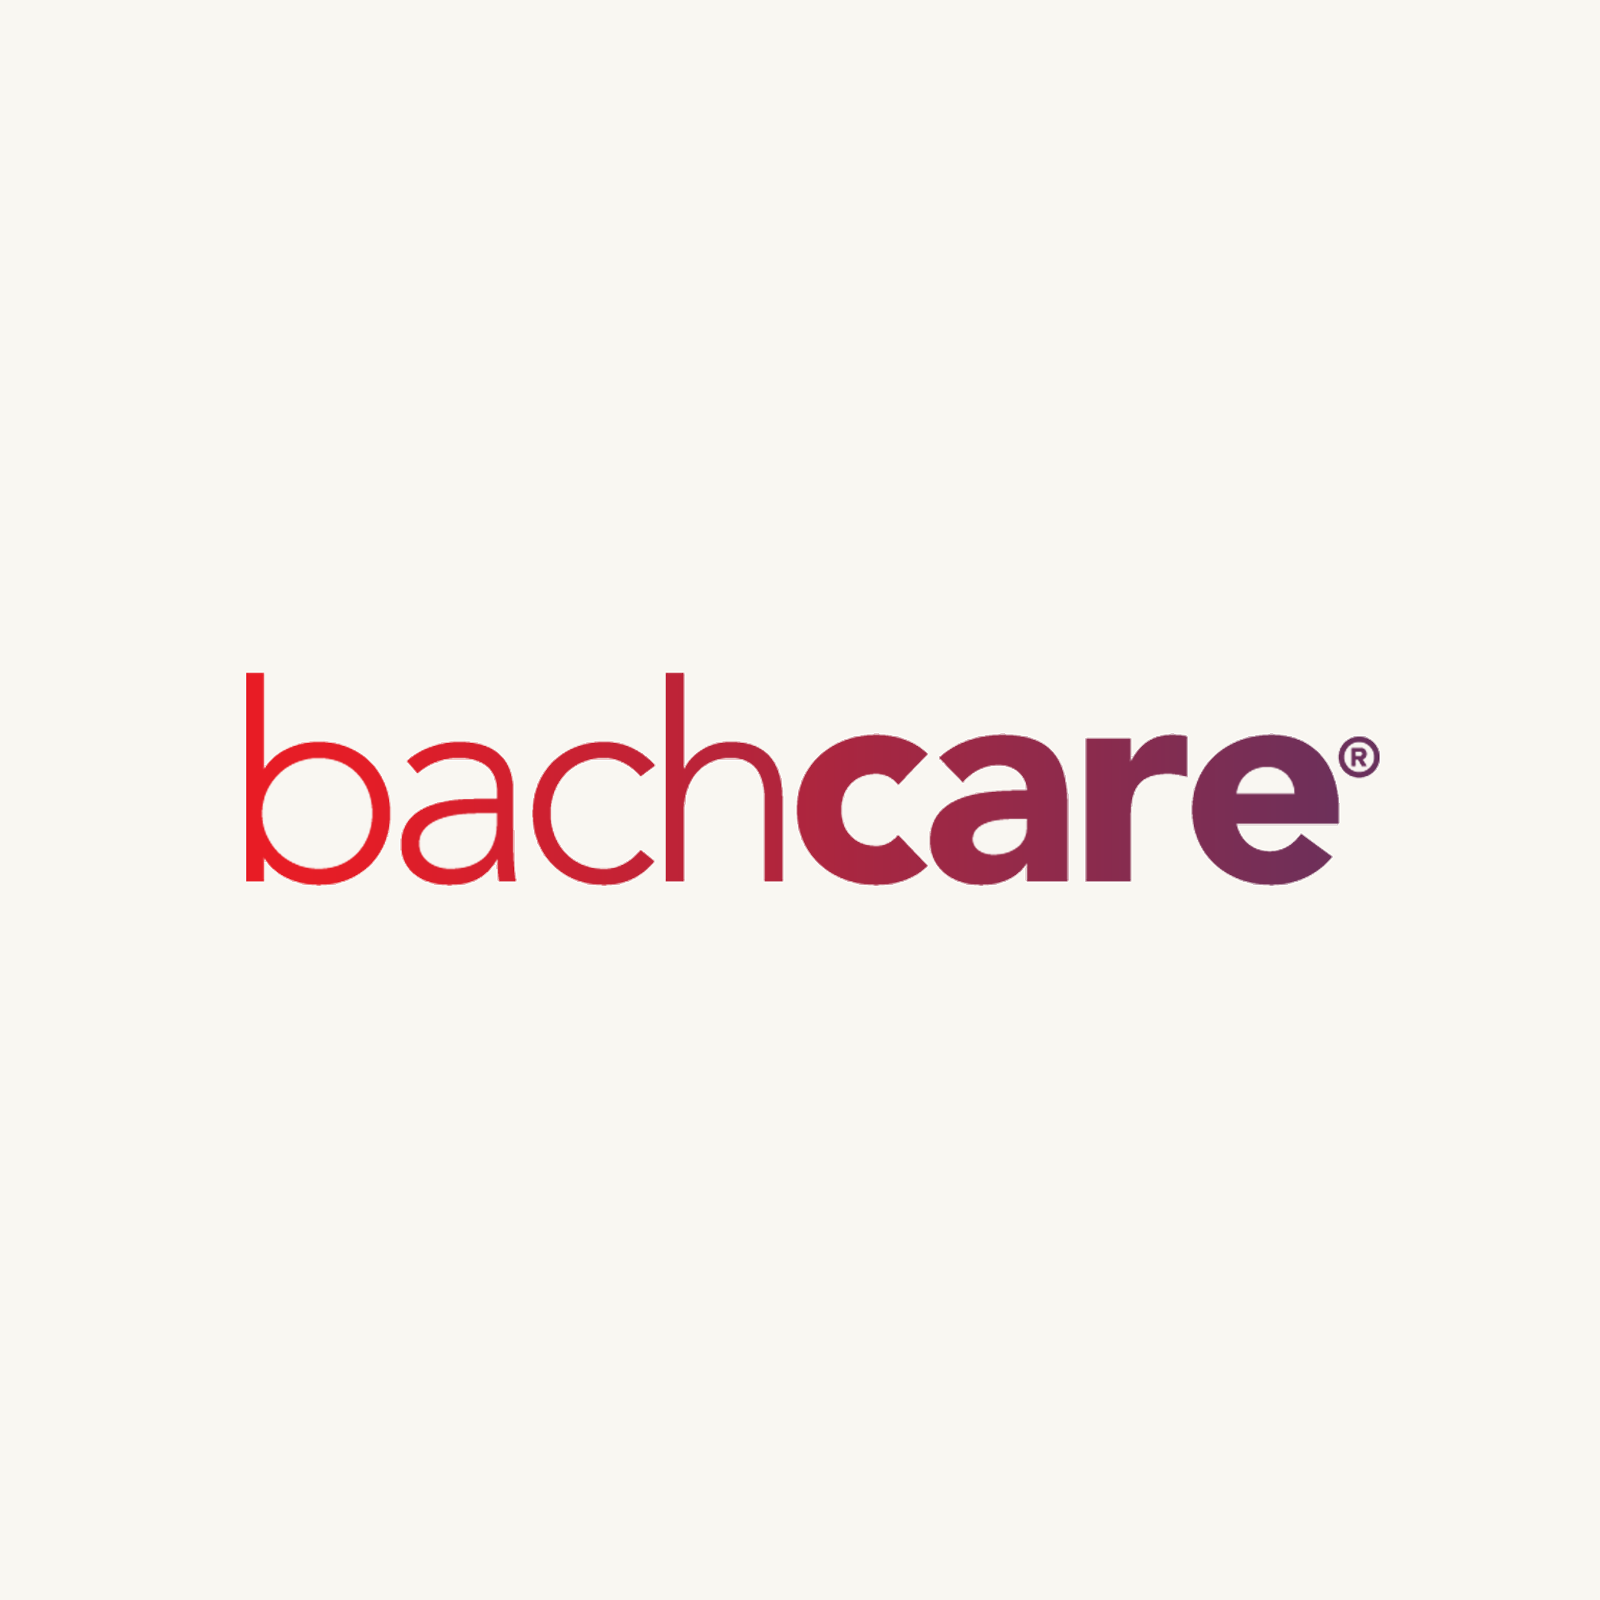 Nara Loughnan appointed as Head of People at Bachcare.